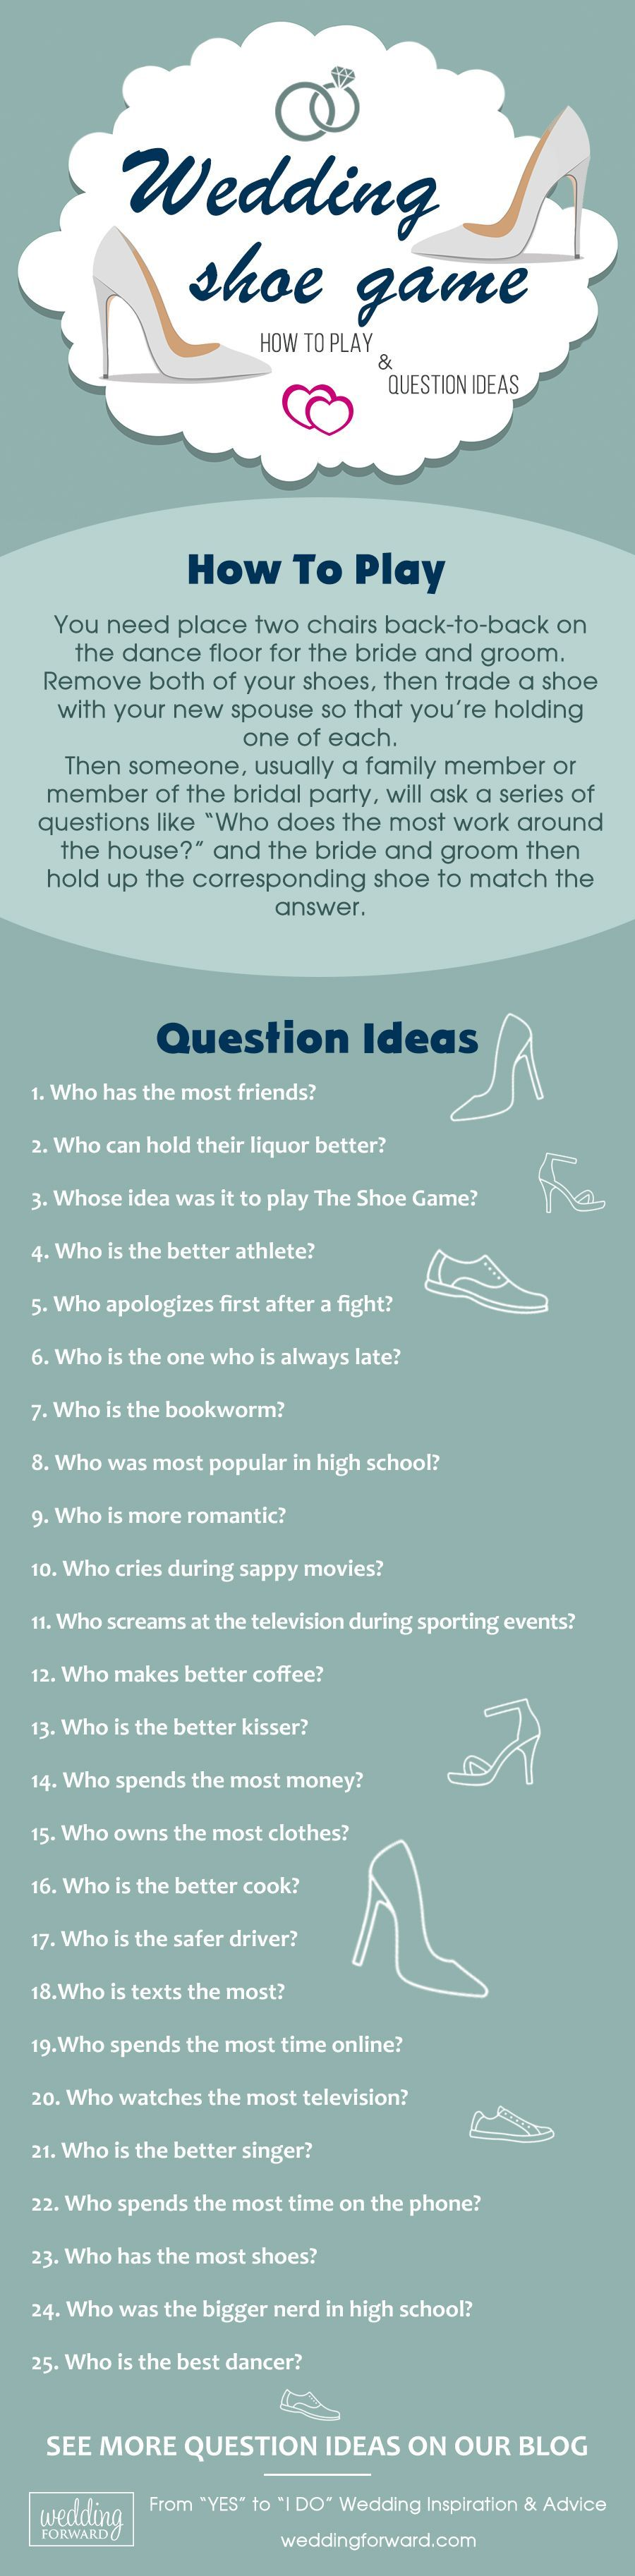 The Shoe Game - How To Play & 50 Question Ideas